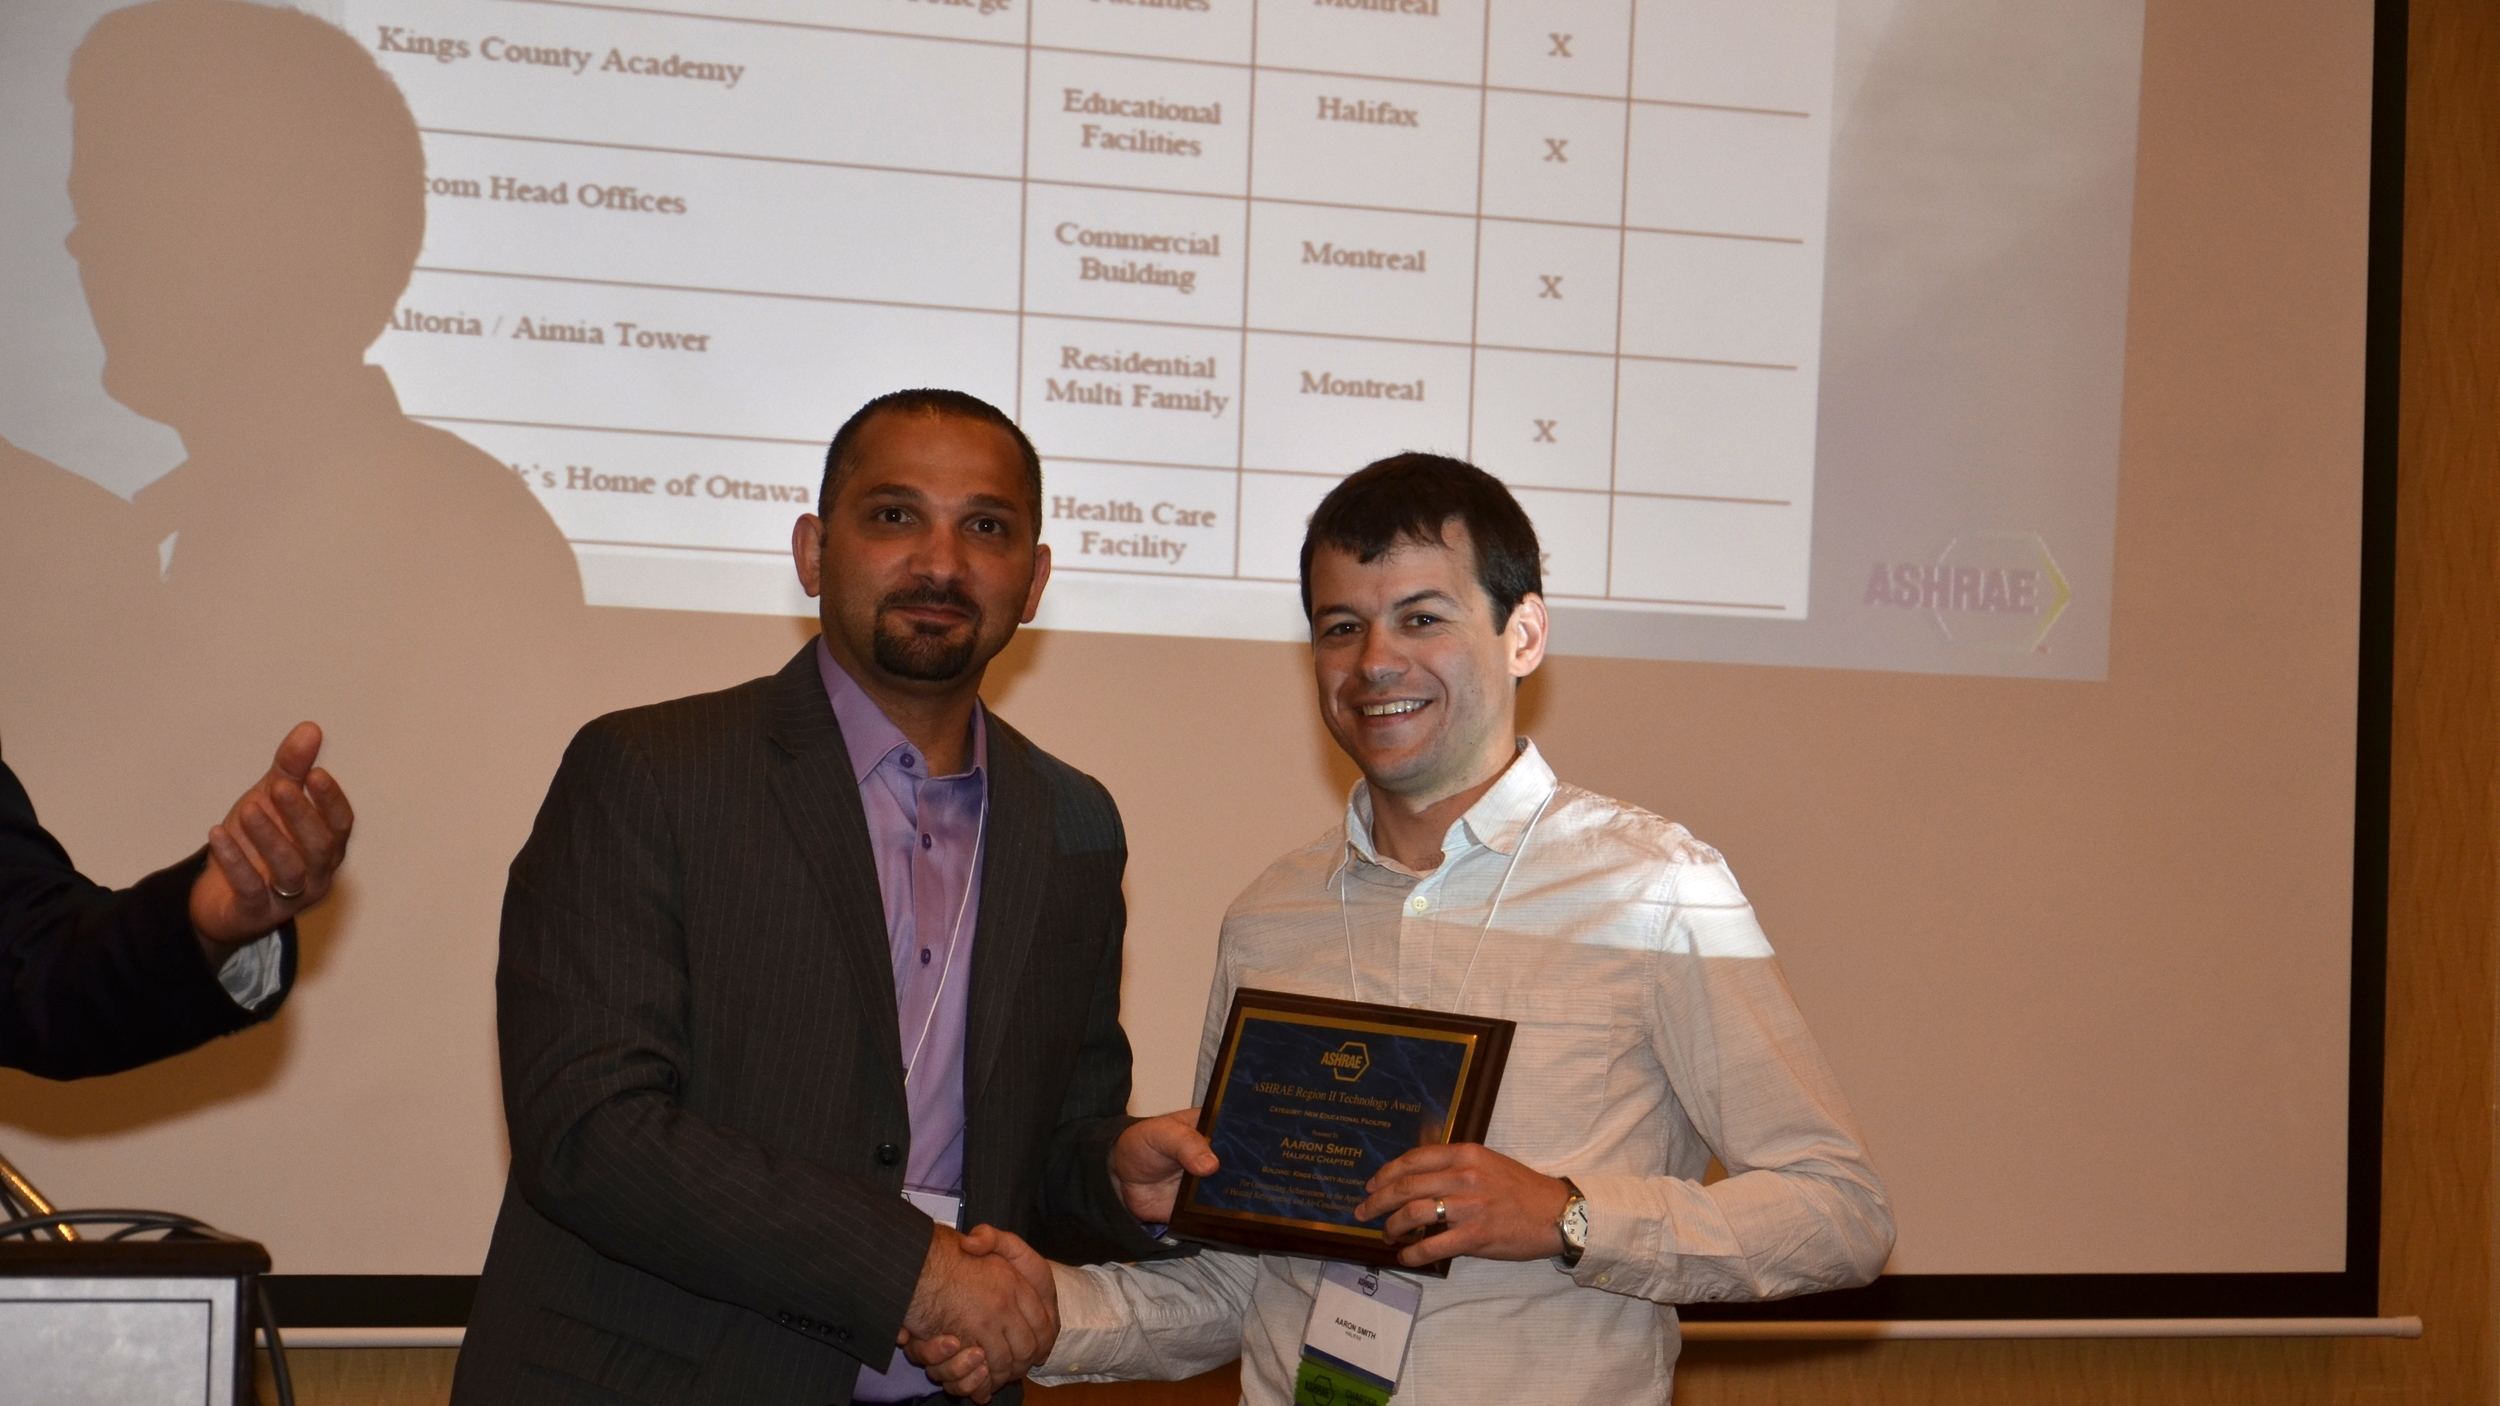 Aaron Smith receiving the Region II Technology Award from Assistant Regional Chair Ibrahim Semhat